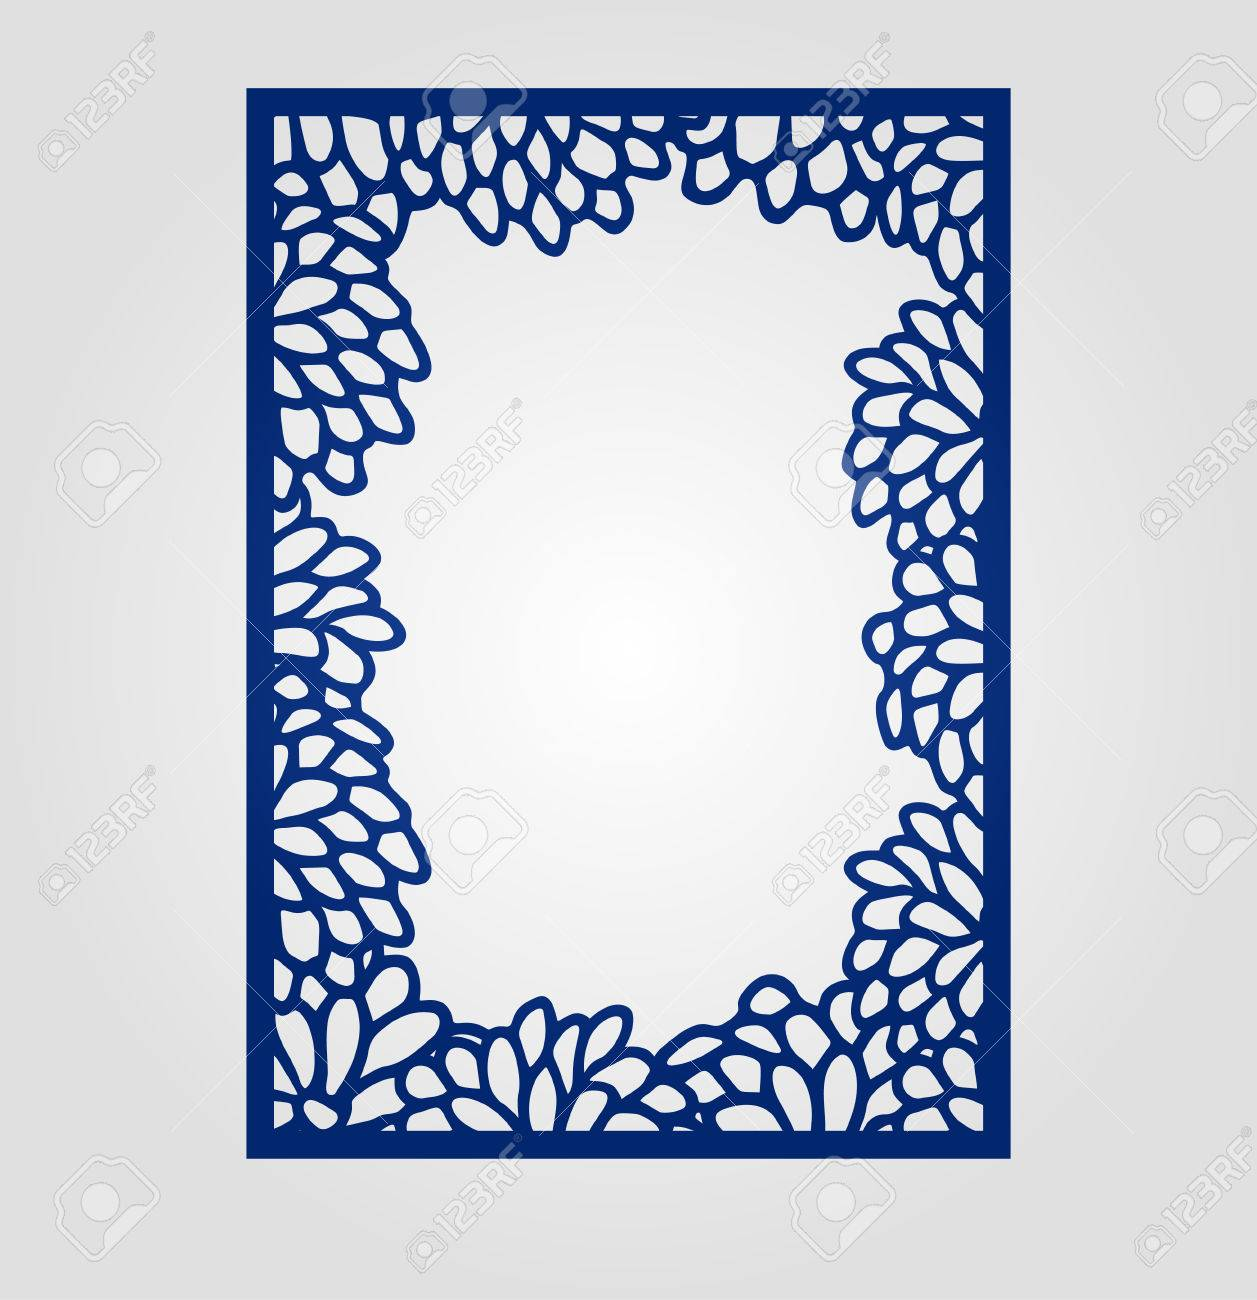 Abstract cutout panel for laser cutting die cutting or stencil abstract cutout panel for laser cutting die cutting or stencil vector filigree pattern for stopboris Images